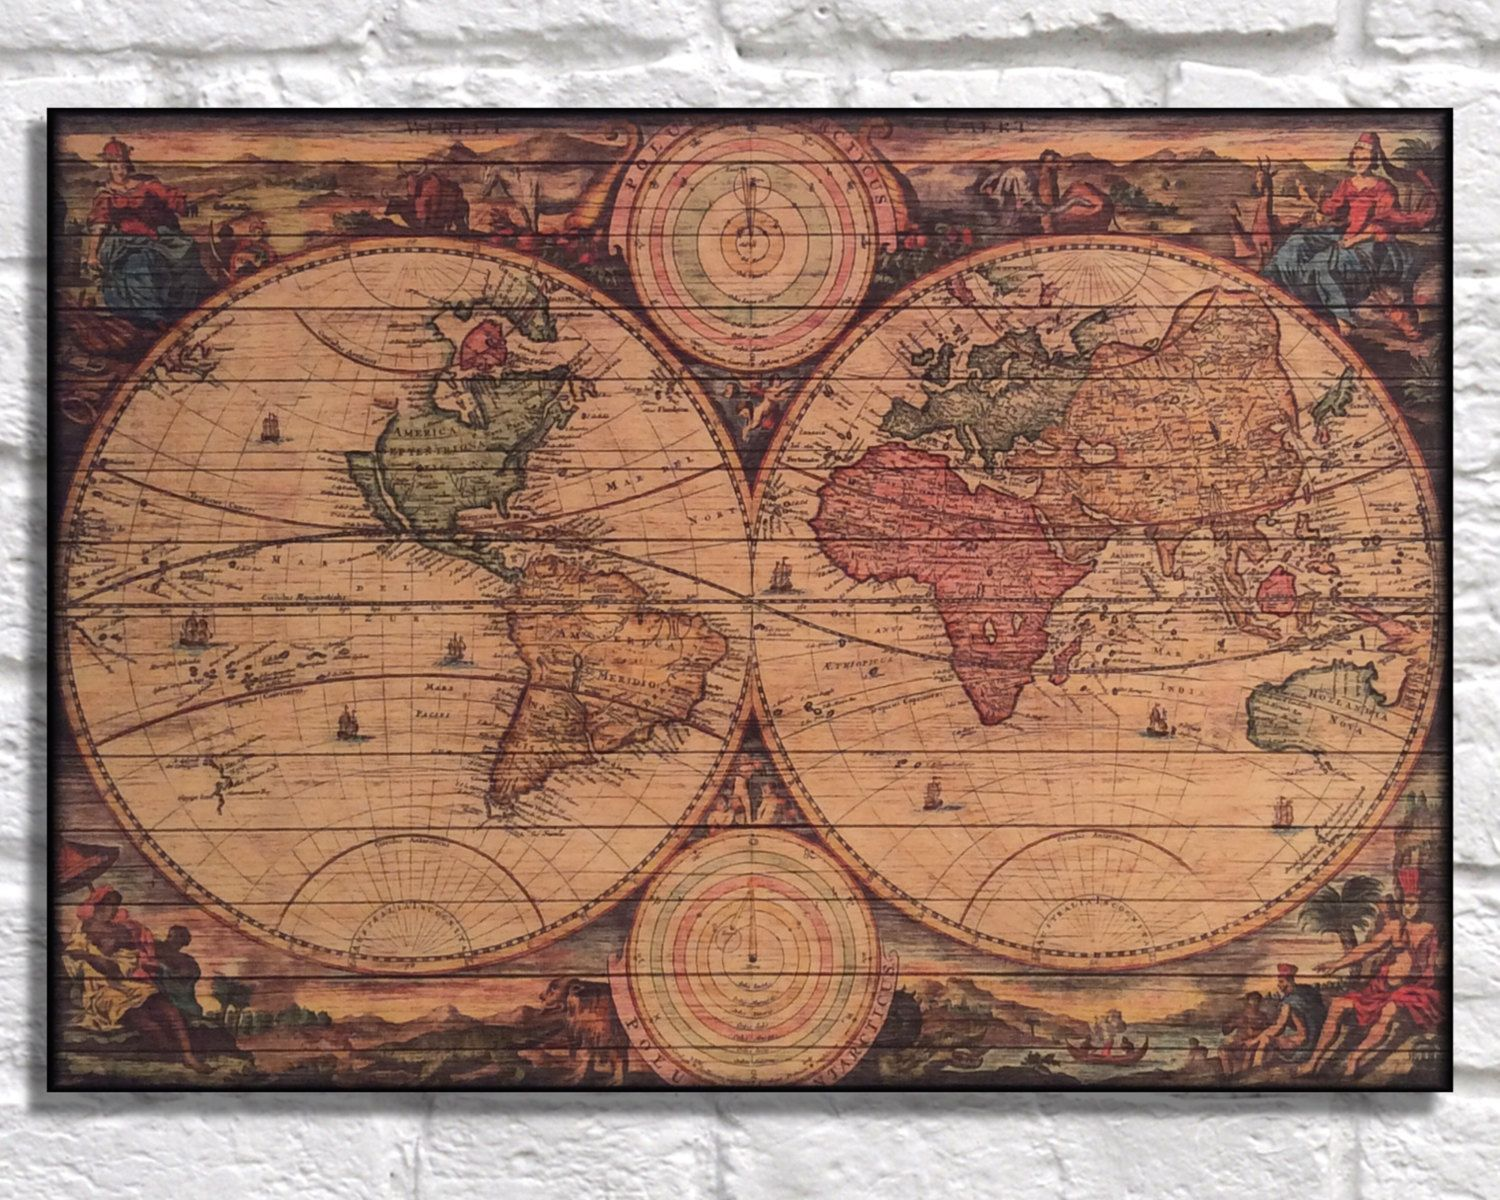 Wood world map father gift wood wall art mens gift wood map travel wood world map father gift wood wall art mens gift wood map travel map gift for men office decor wife gift for husband panel effect wood art gumiabroncs Choice Image